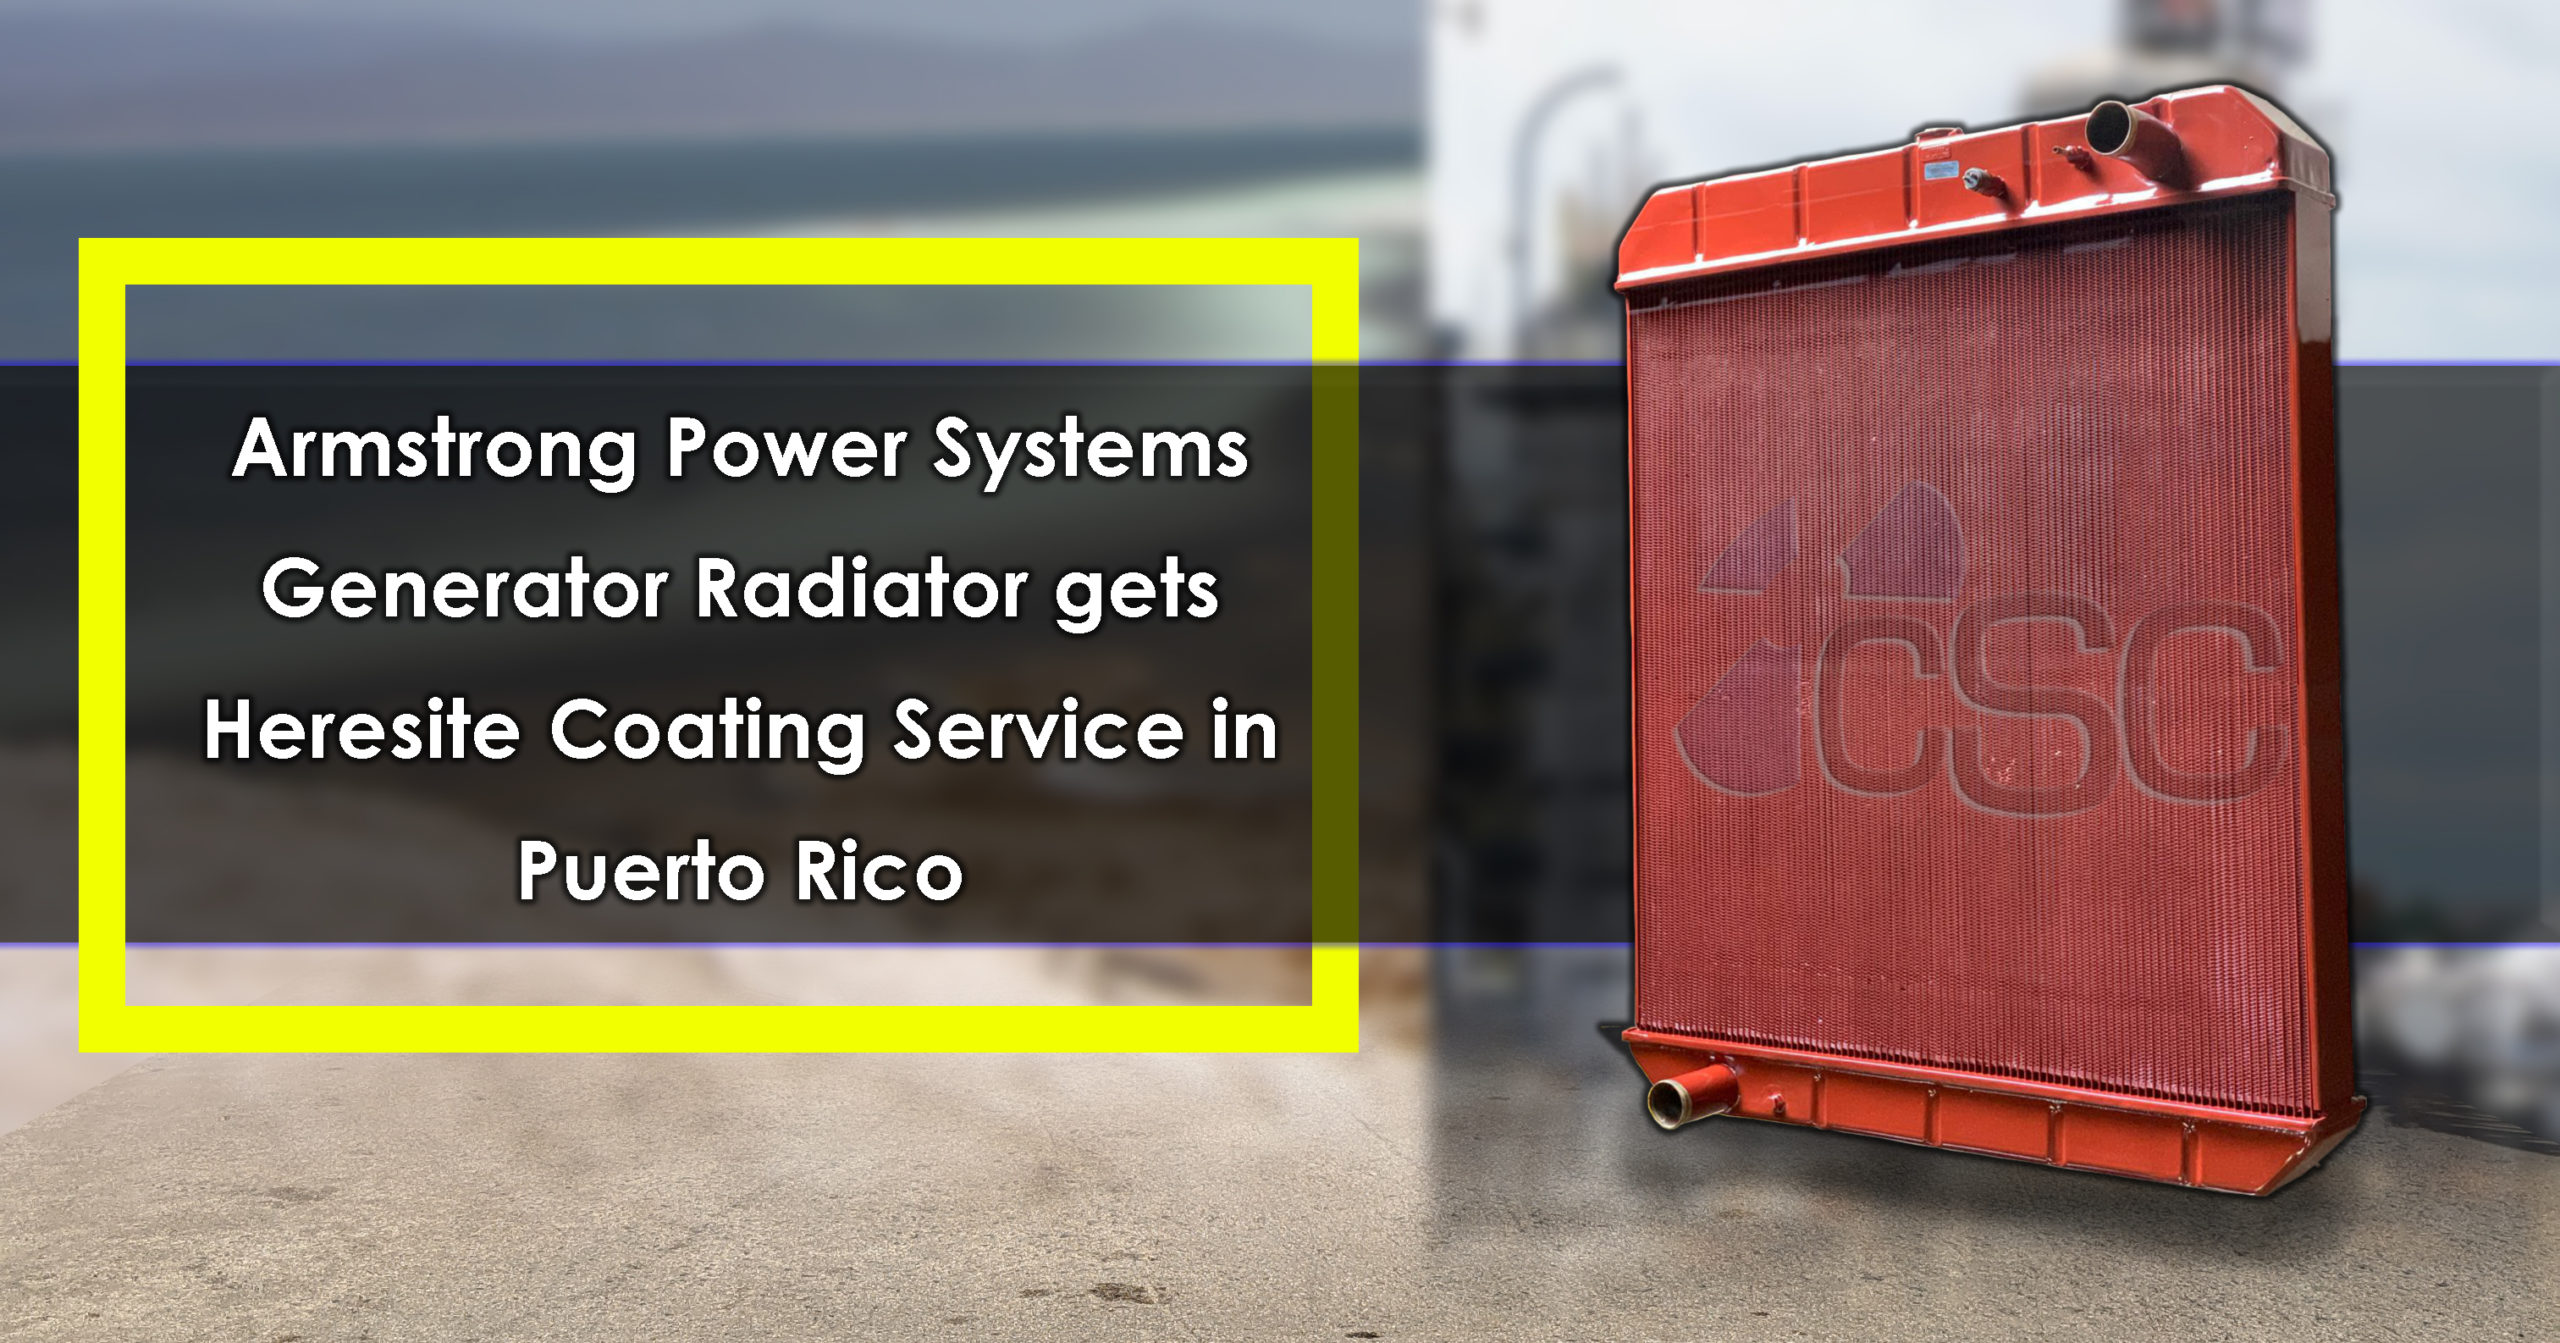 Armstrong Power Systems Generator Radiator gets Heresite Coating Service in Puerto Rico